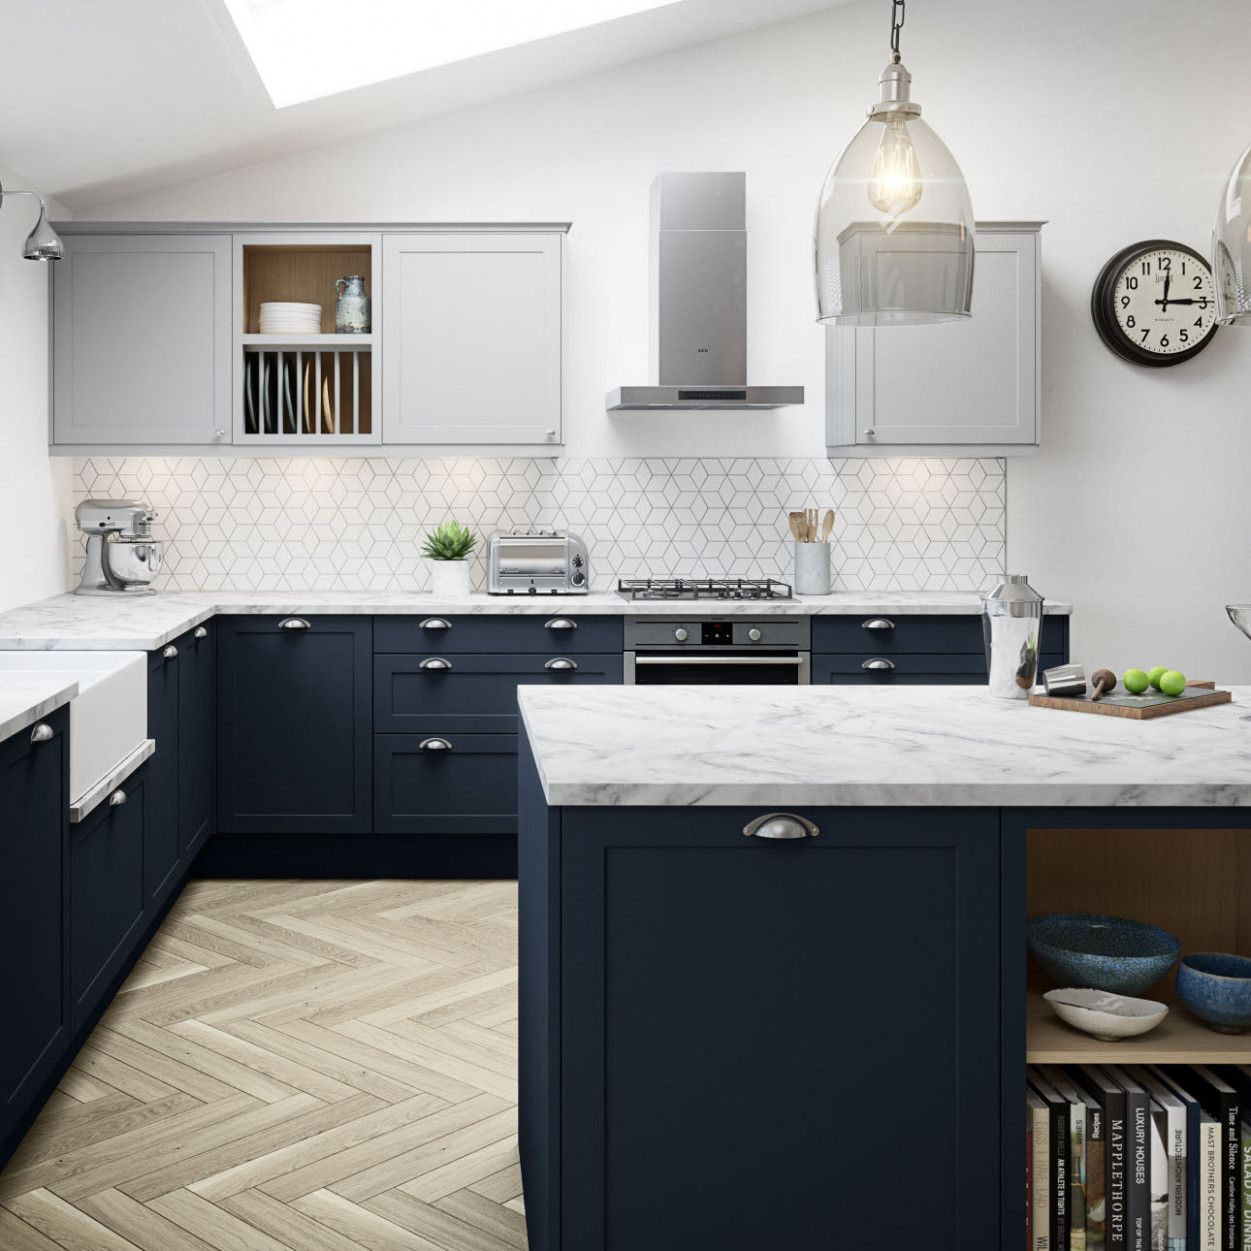 10 Awesome Where To Buy Navy Kitchen Cabinets In 2020 Kitchen Cabinets Color Combination Dark Blue Kitchen Cabinets Blue Shaker Kitchen